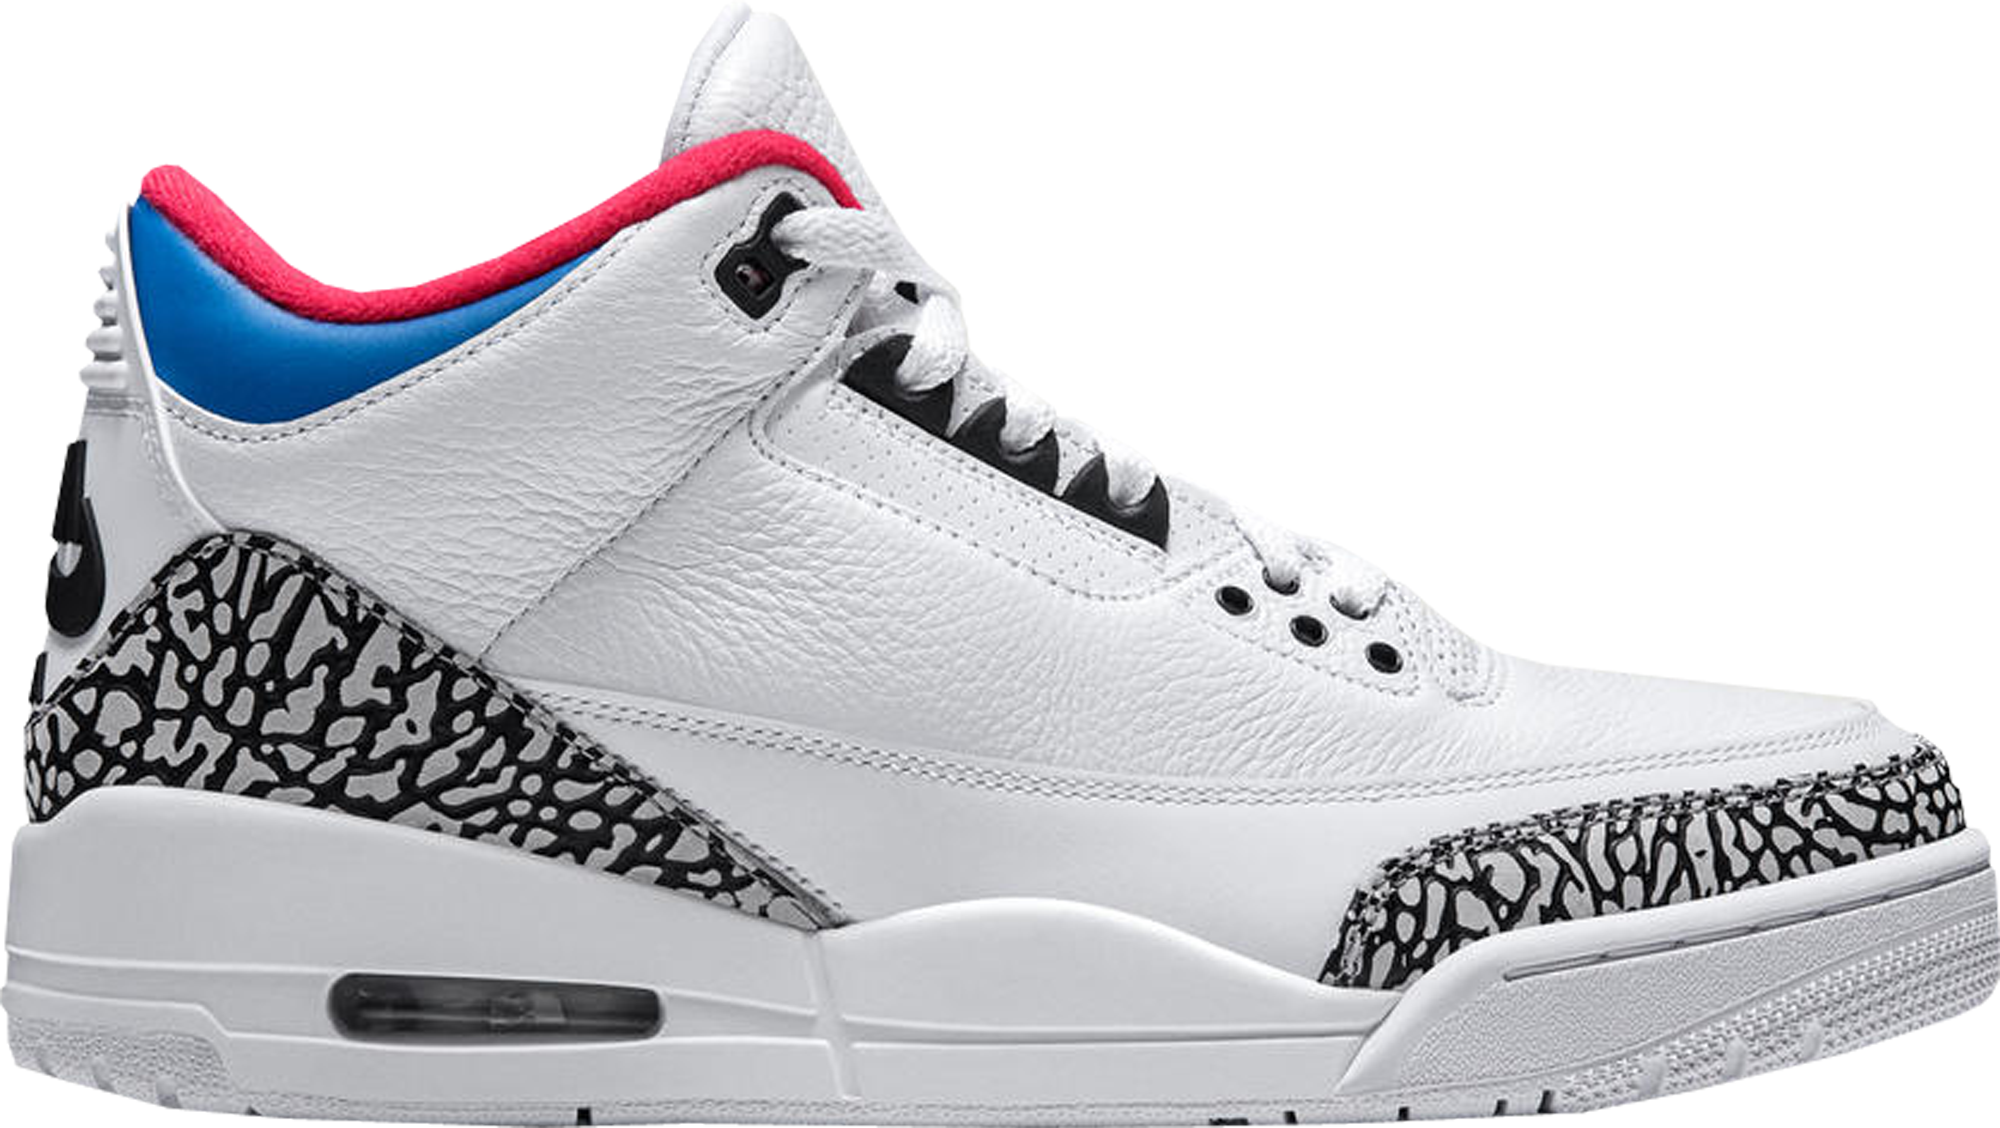 air jordan 3 korea stock x reviews